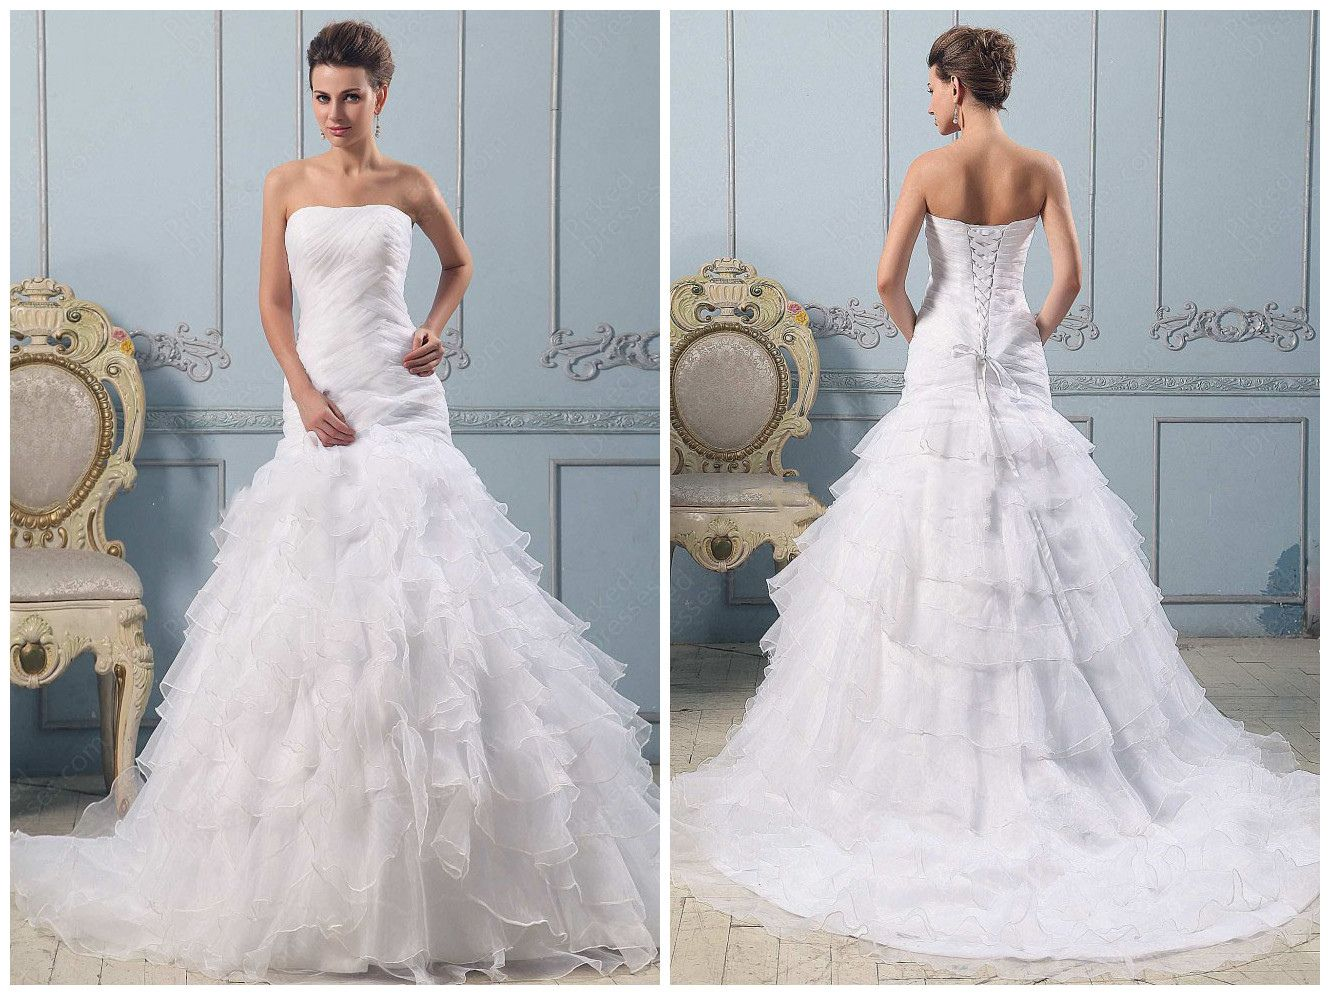 Famous Celine Dion Wedding Gown Pattern - All Wedding Dresses ...